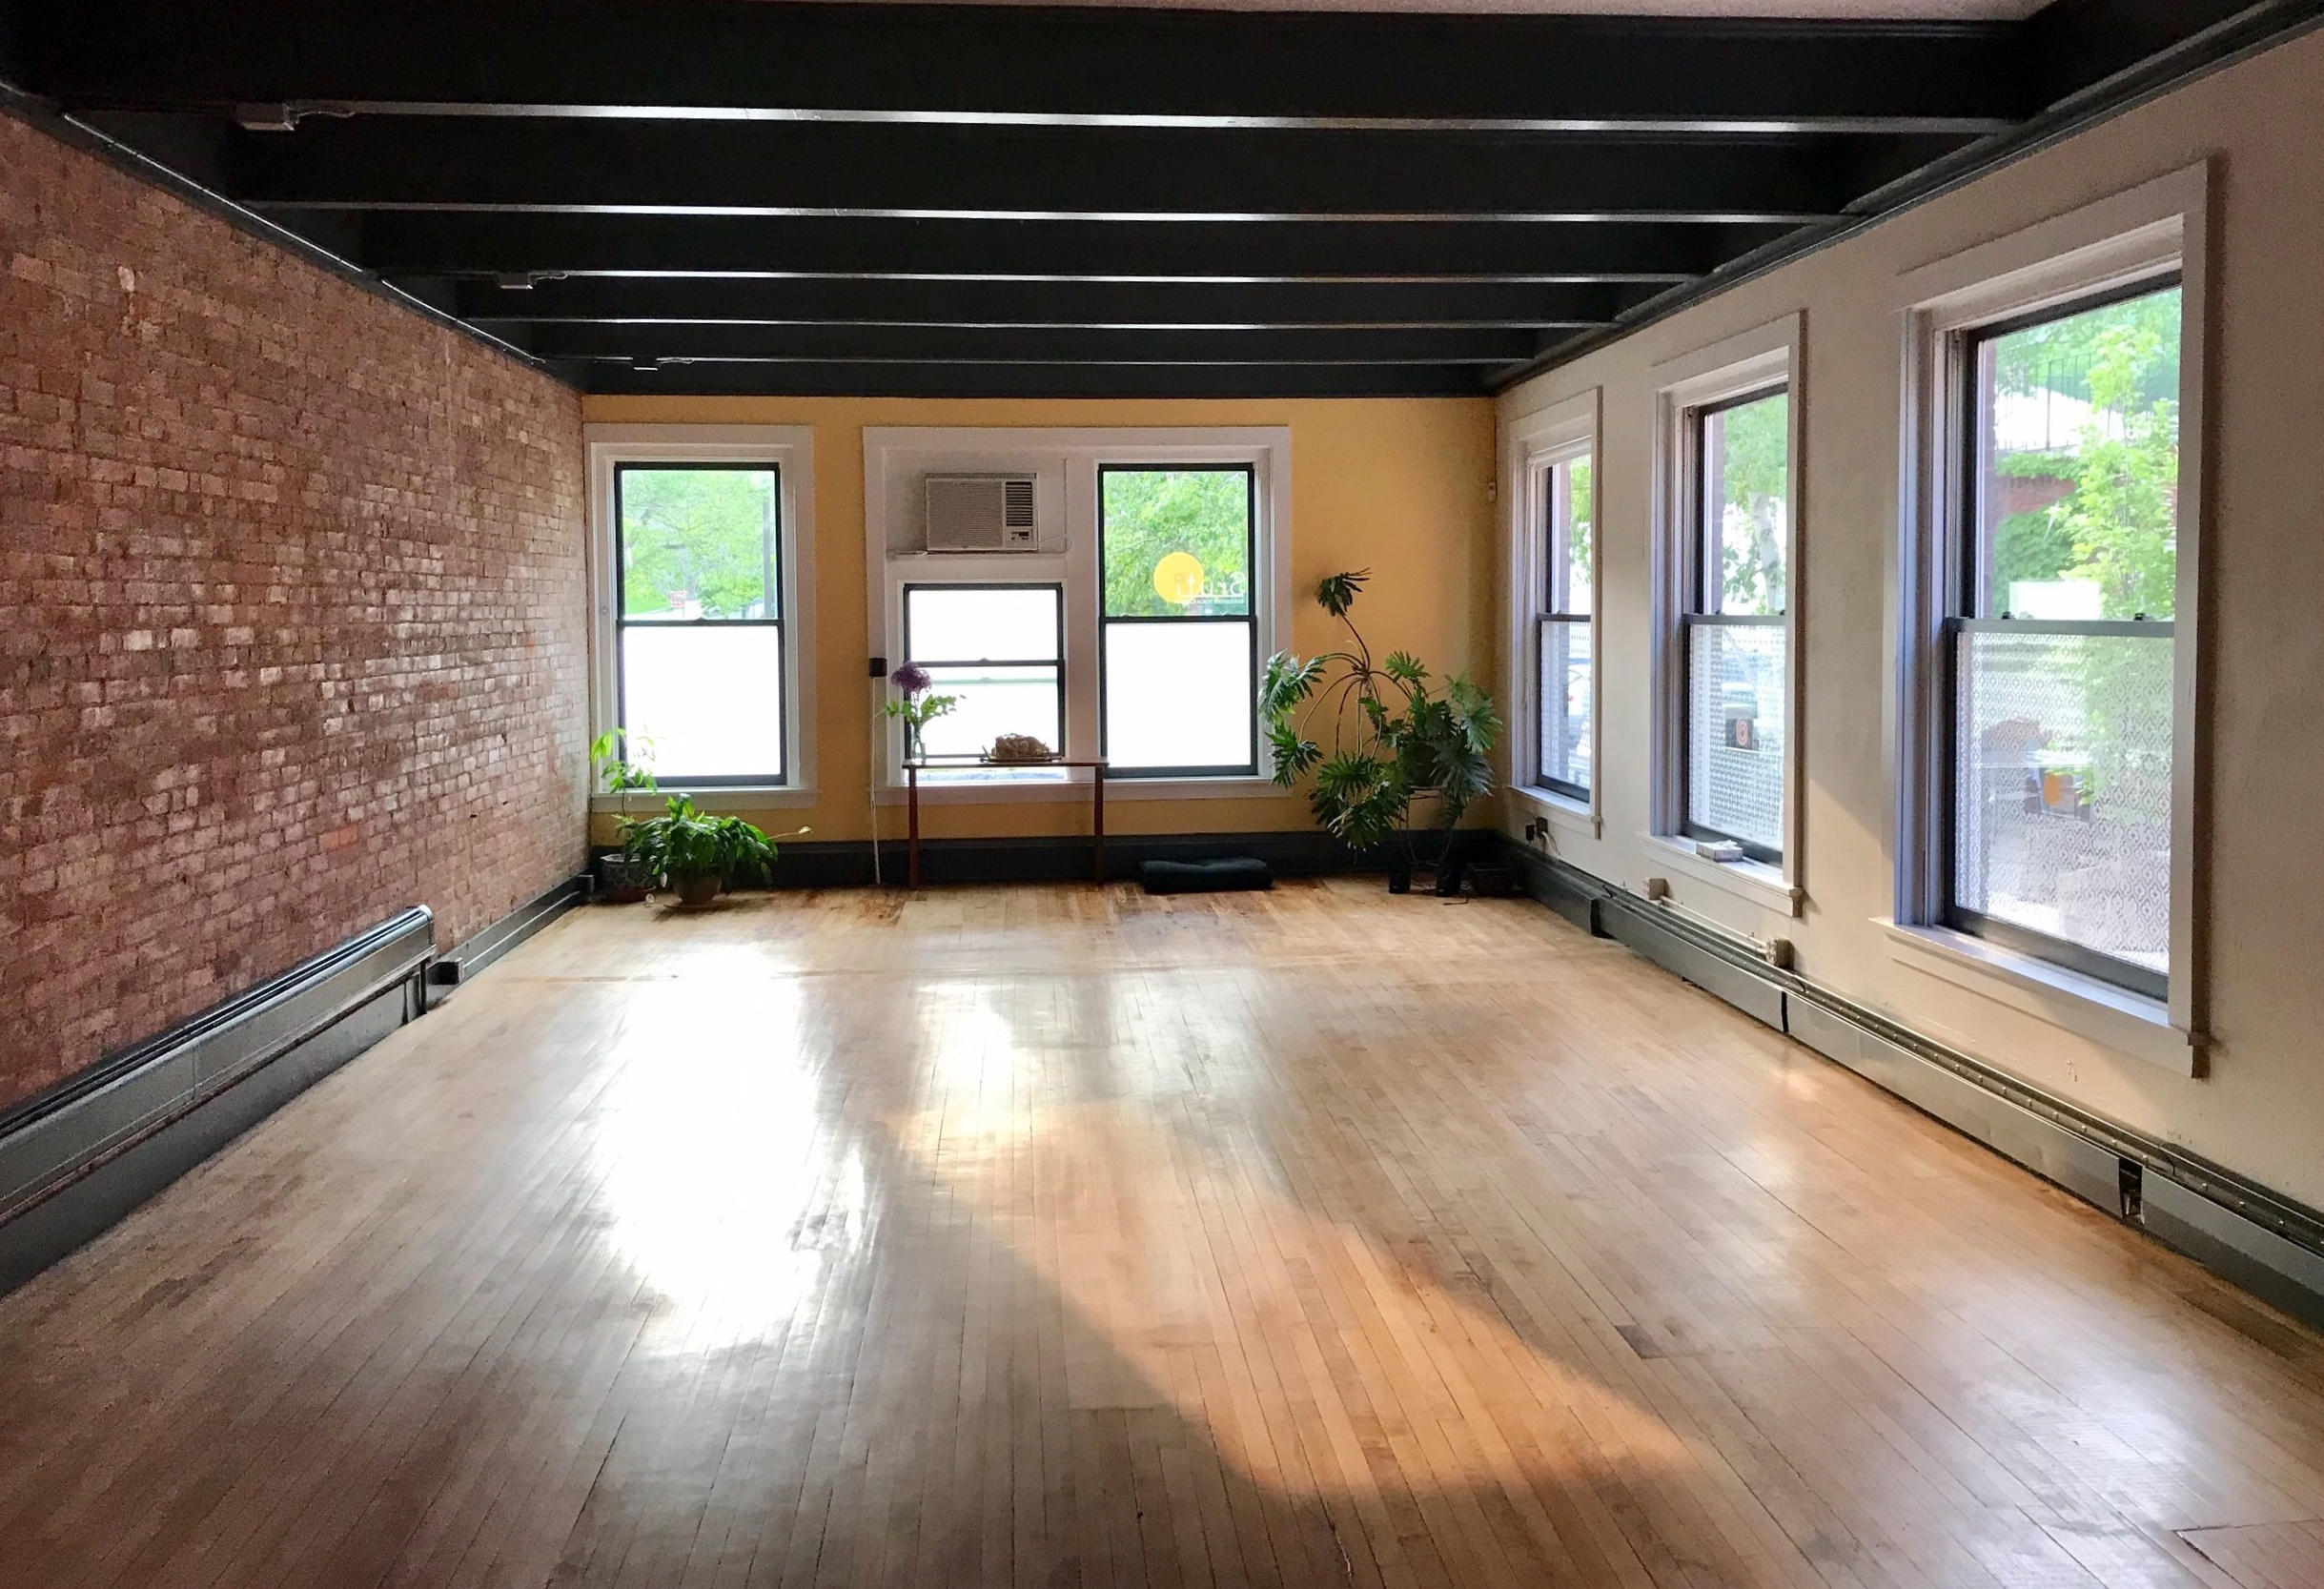 STUDIO RENTALS - Our centrally located, fun, bright space is available to rent for your classes, workshops, trainings, private events, dance, music, show, consultation, private class...